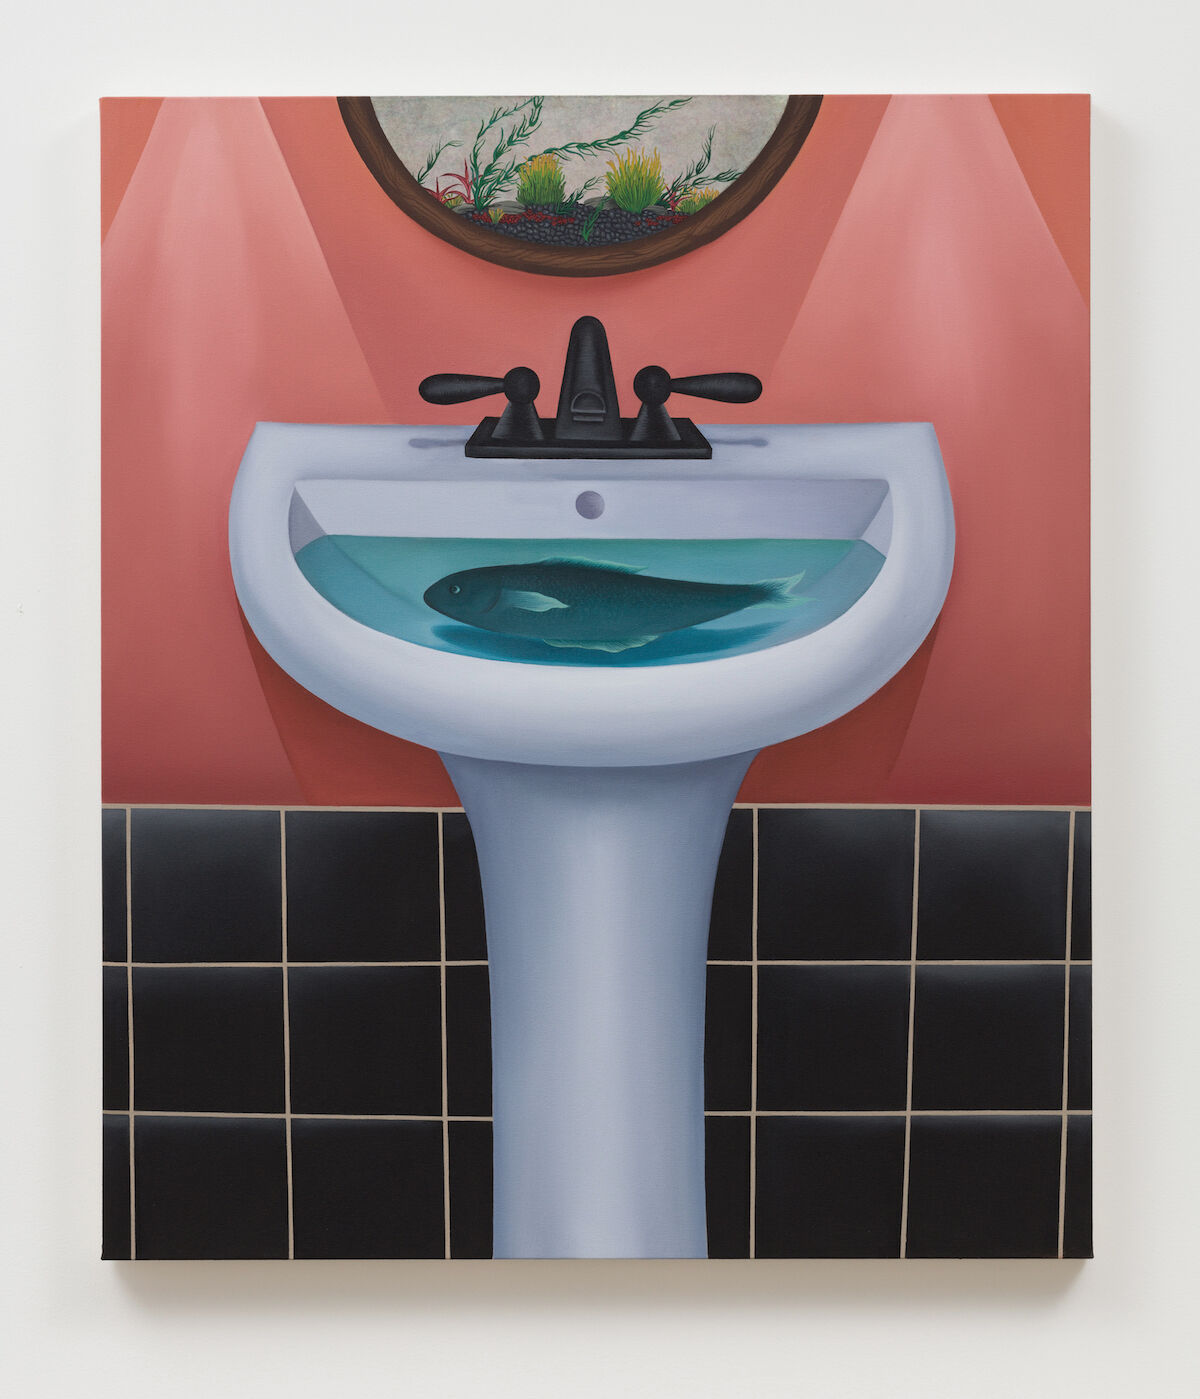 Julie Curtiss, Quarantine, 2018. Courtesy of the artist and Anton Kern Gallery.